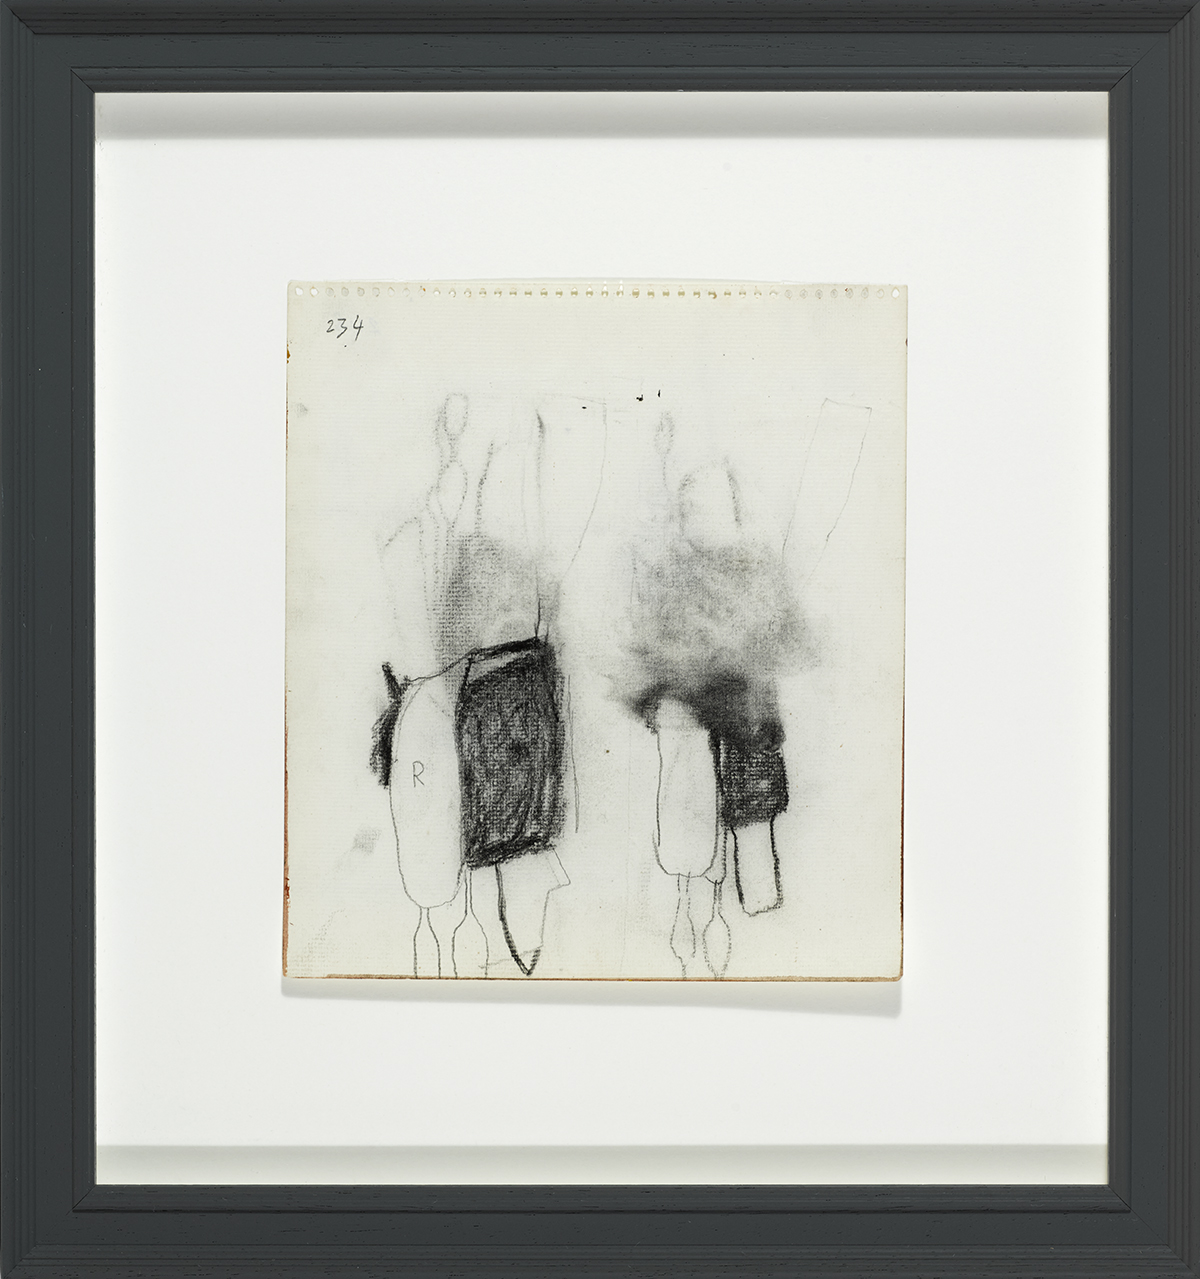 Lot 60 - William Scott CBE RA (1913-1989)STILL LIFE WITH KITCHEN UTENSILS, c. 1960 charcoal on paper 8 by 7.